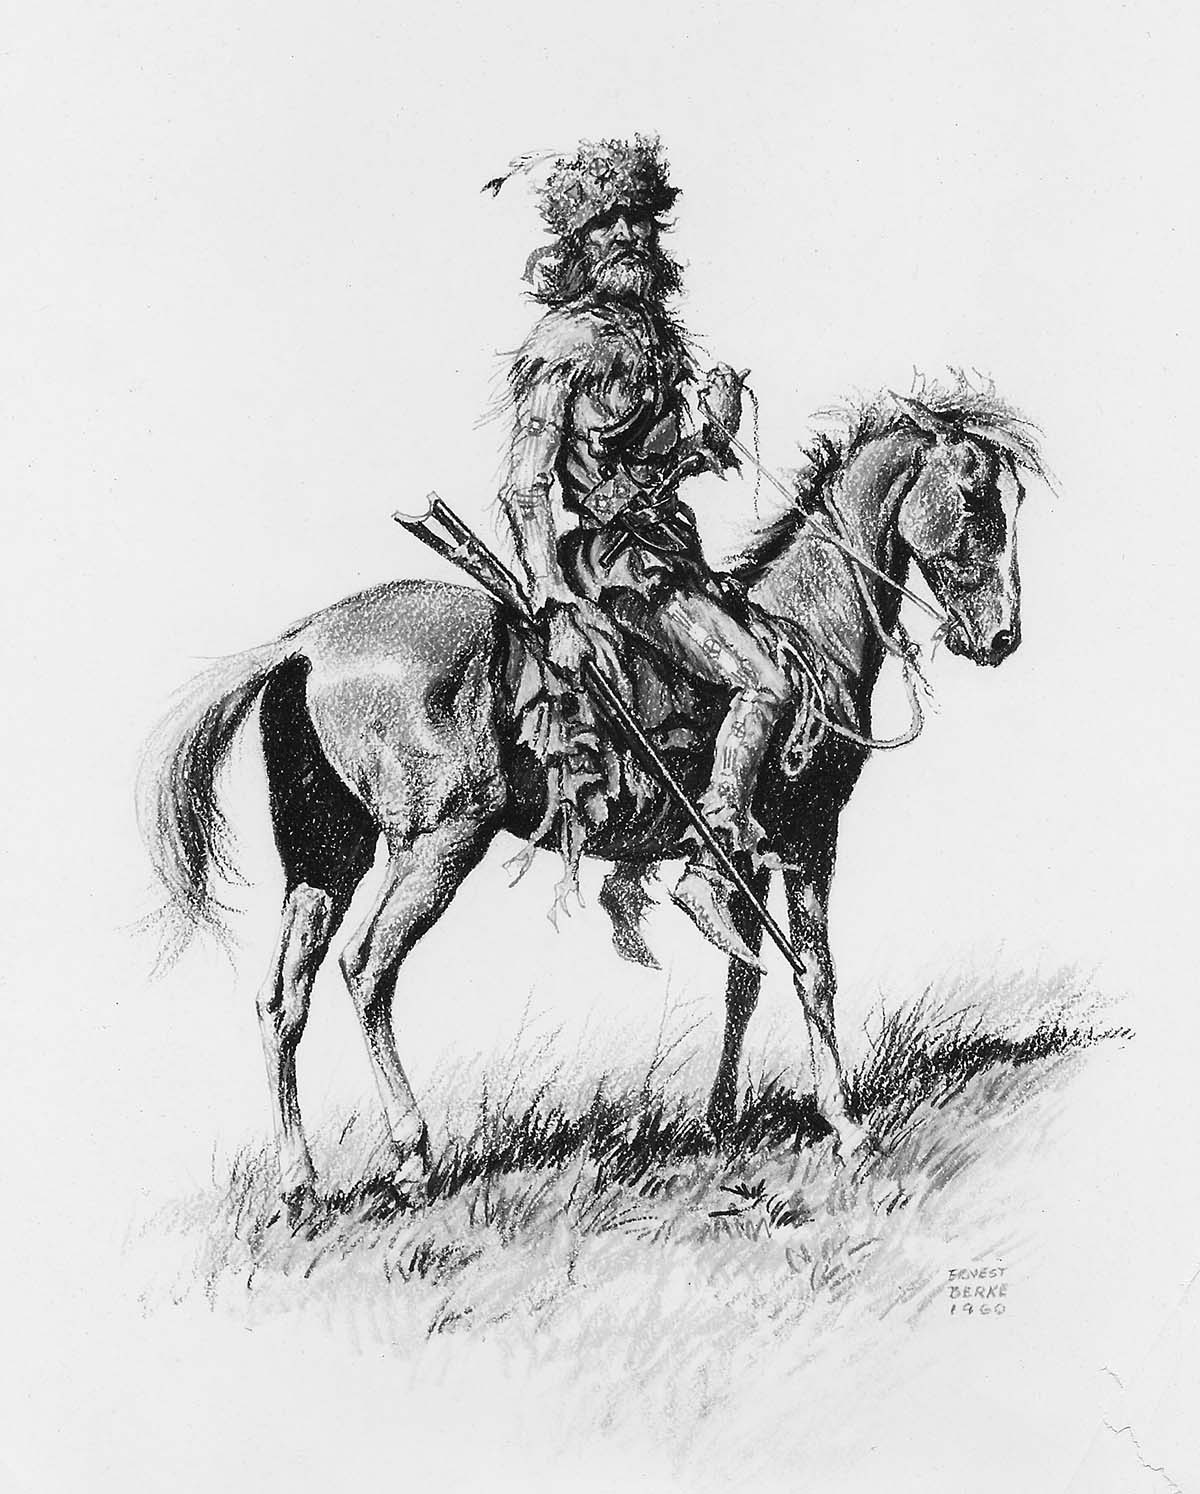 A mountain man of the 1850's on a fine pony dressed in buckskins, rifle in hand.